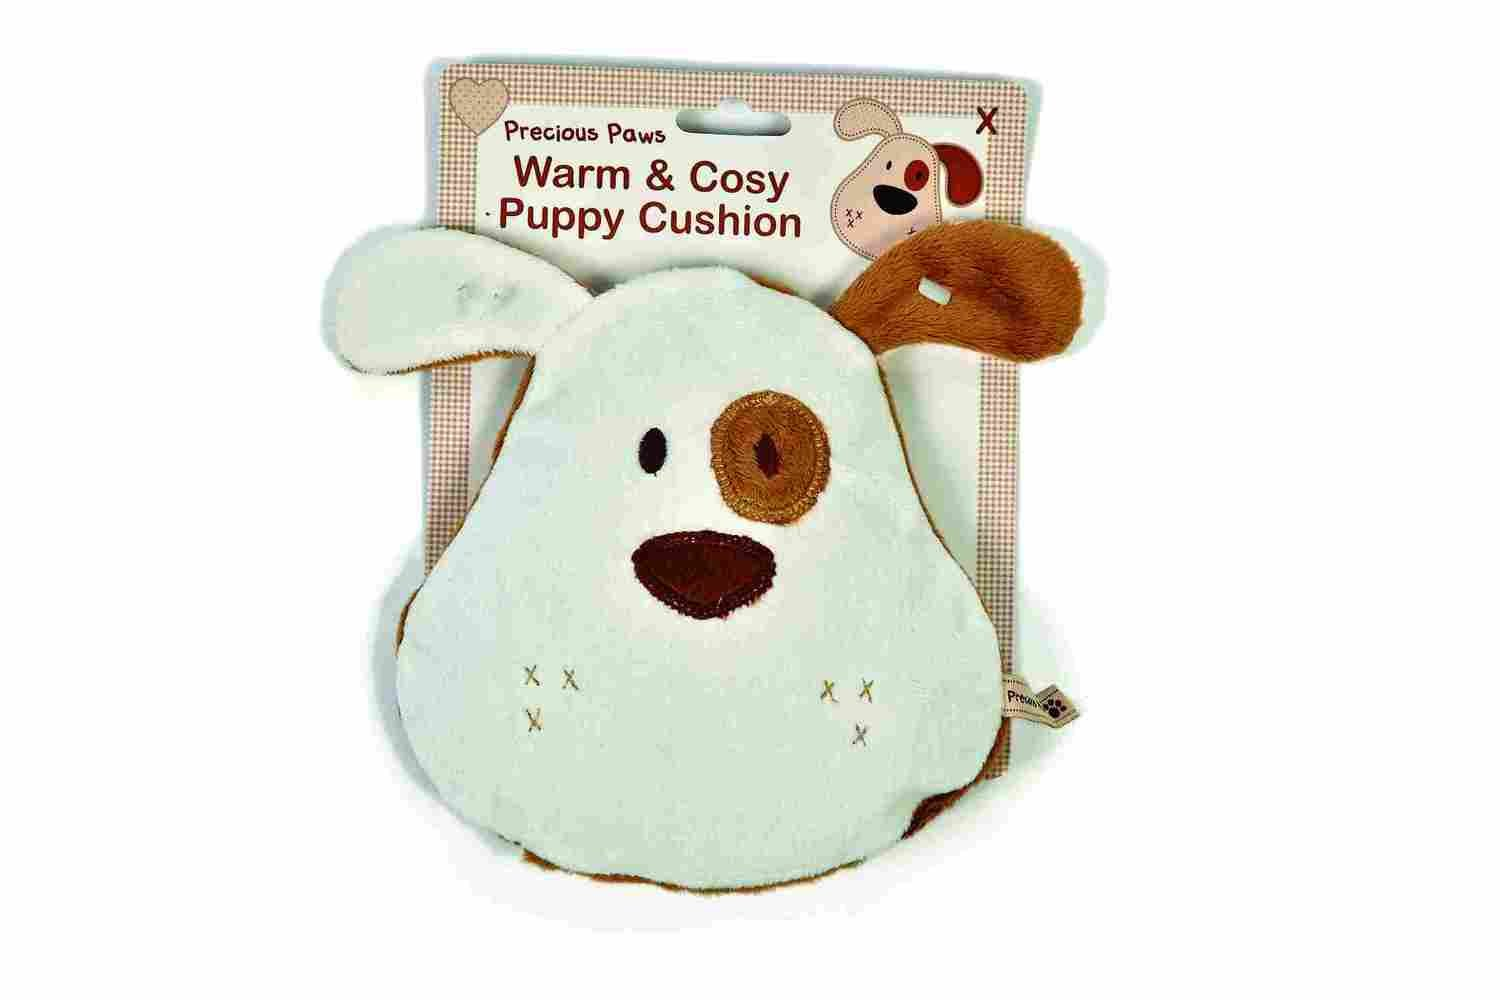 Precious Paws Warm and Cosy Puppy Cushion